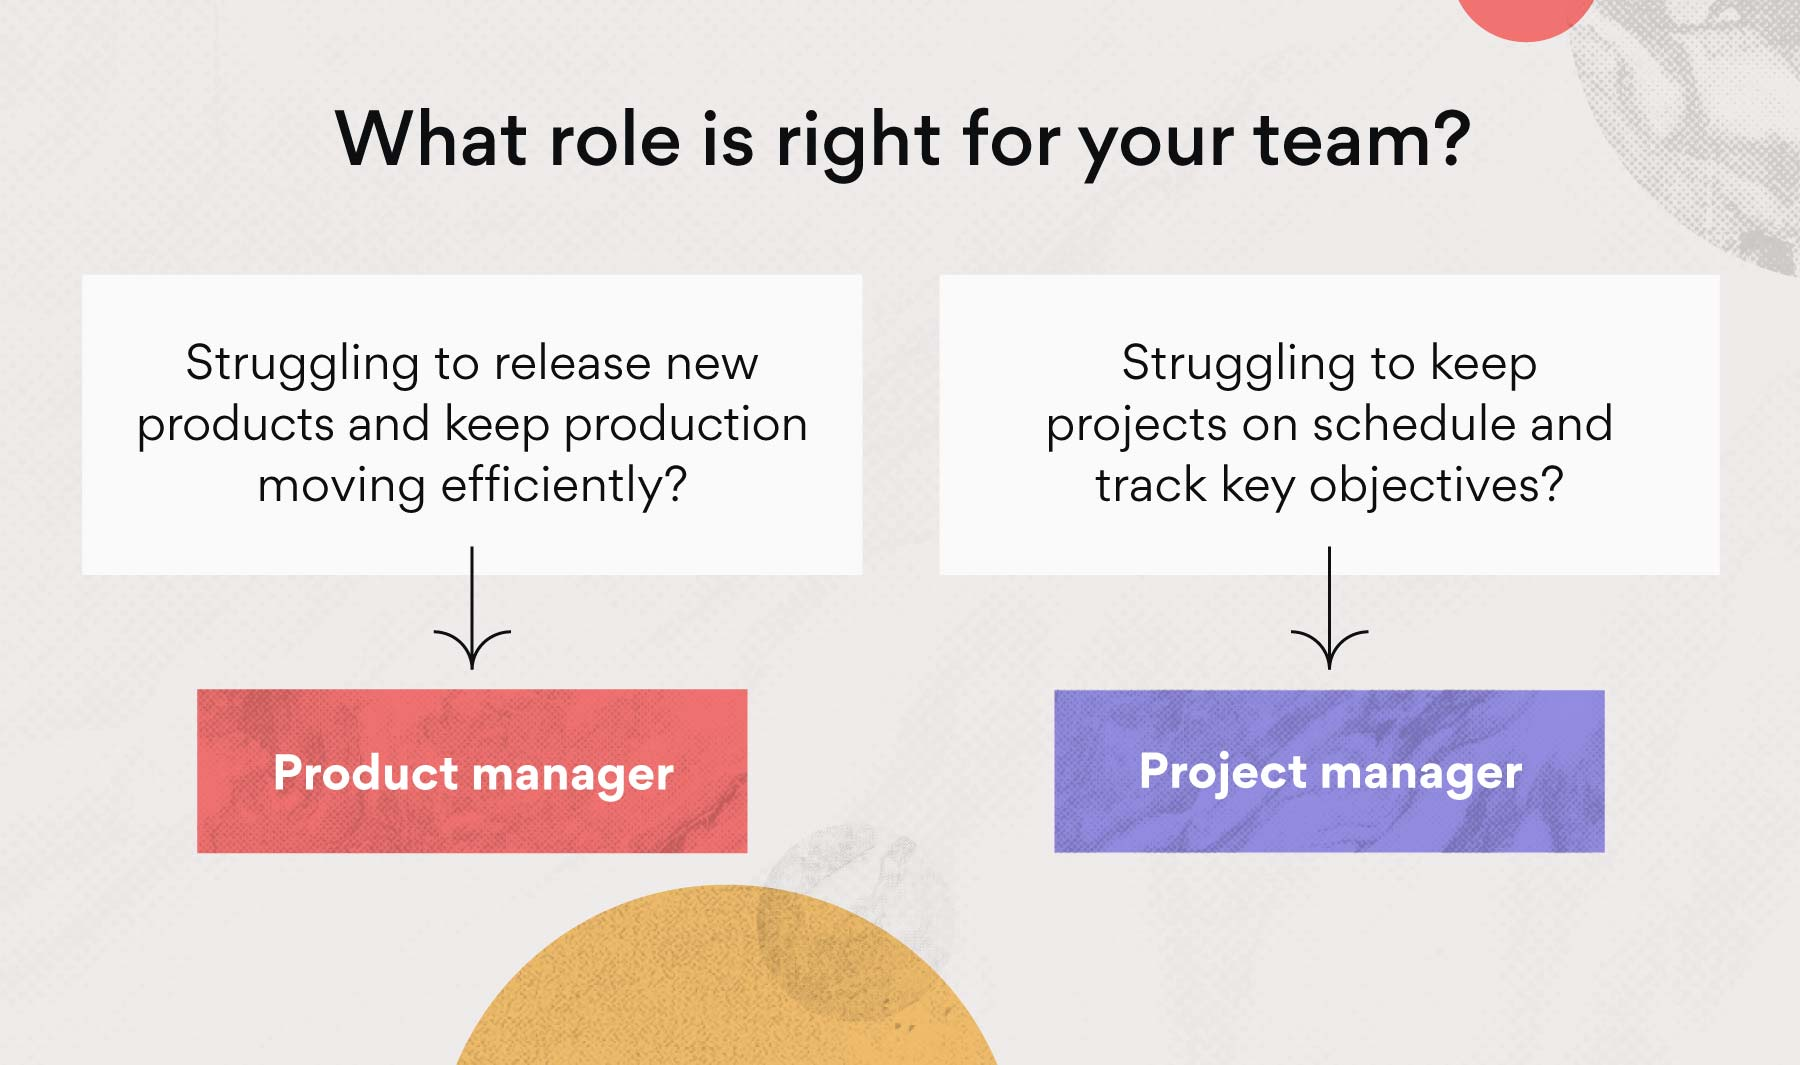 What roles is right for your team?